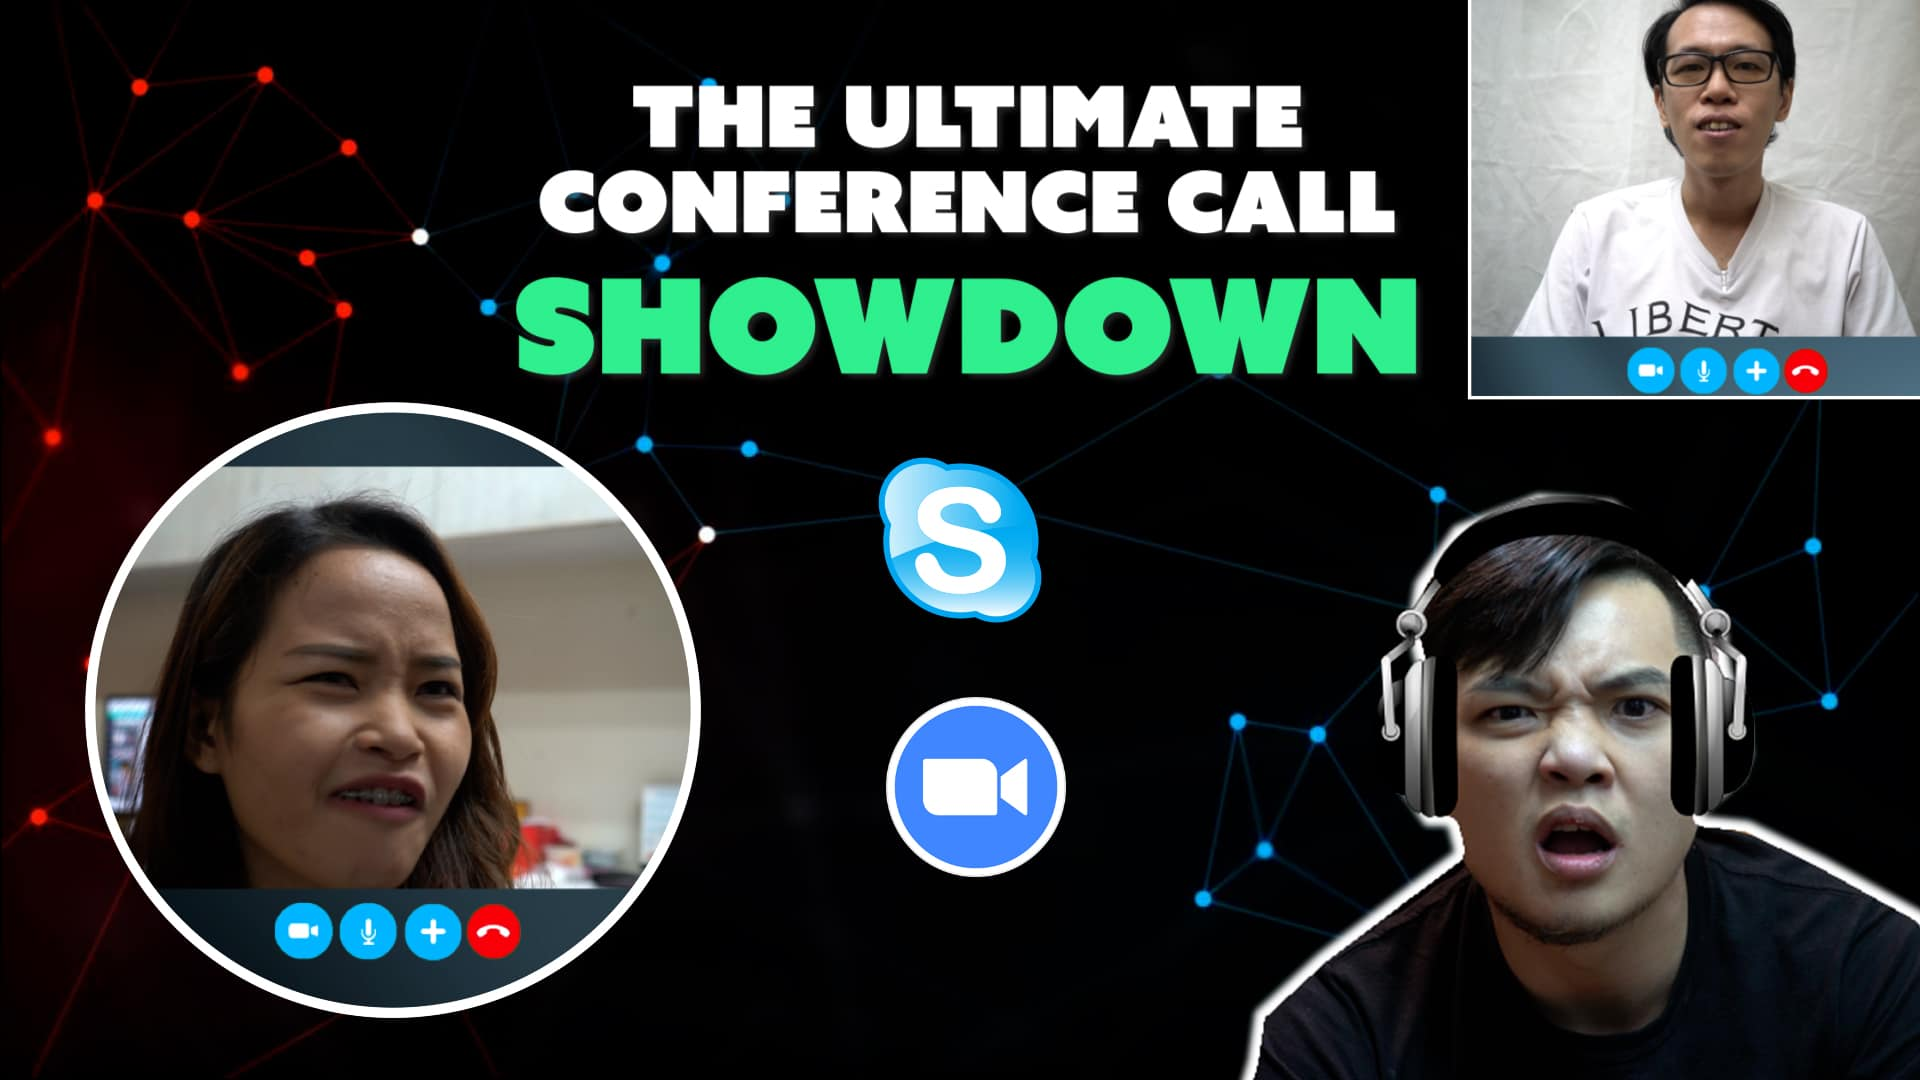 The Ultimate Conference Call Showdown